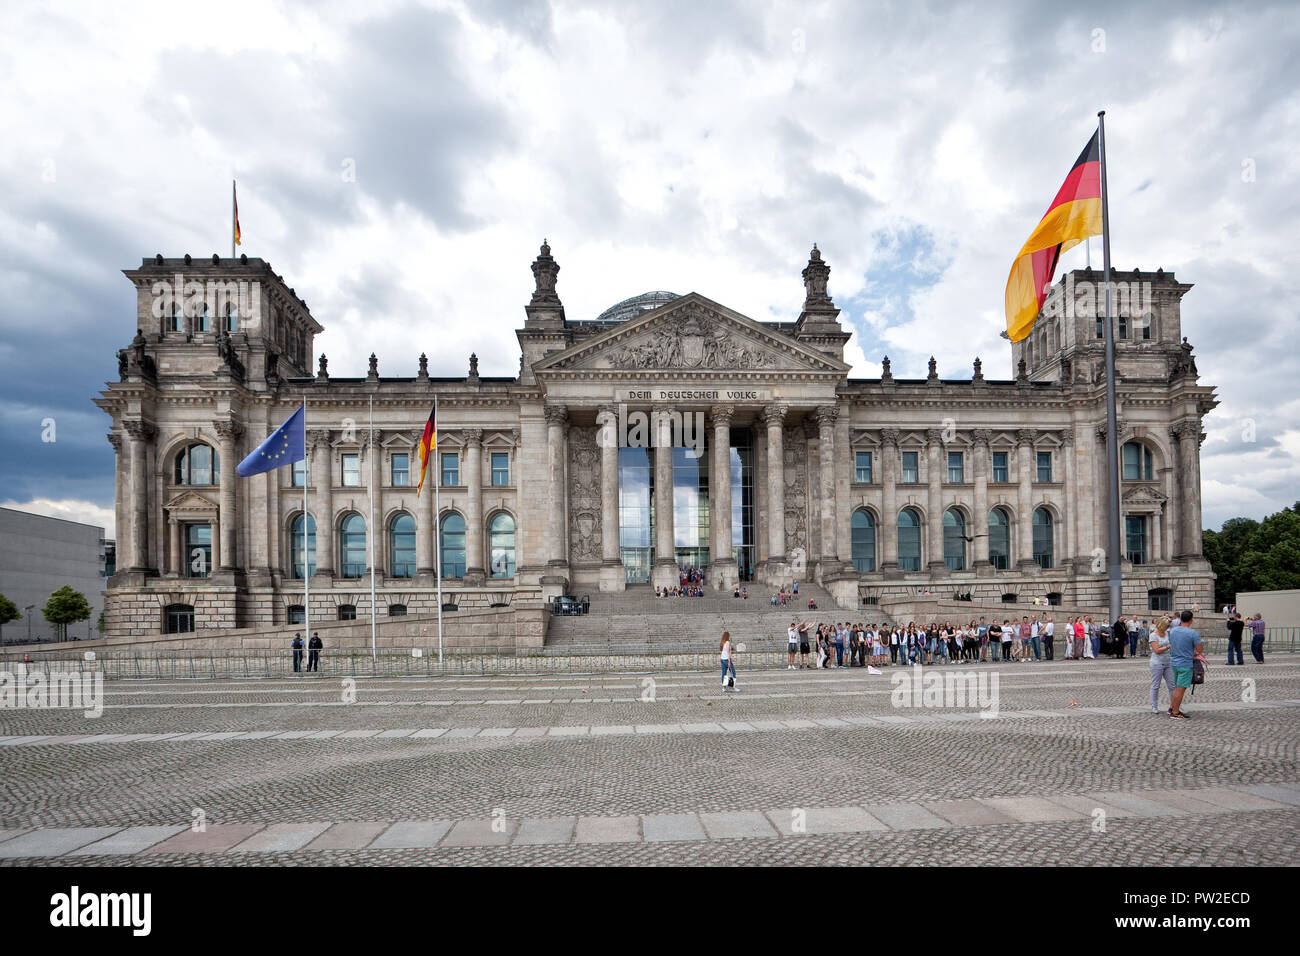 Reichstag building in Berlin, Germany. Reichstag is a well-known building which is placed on the Konigsplatz - Stock Image